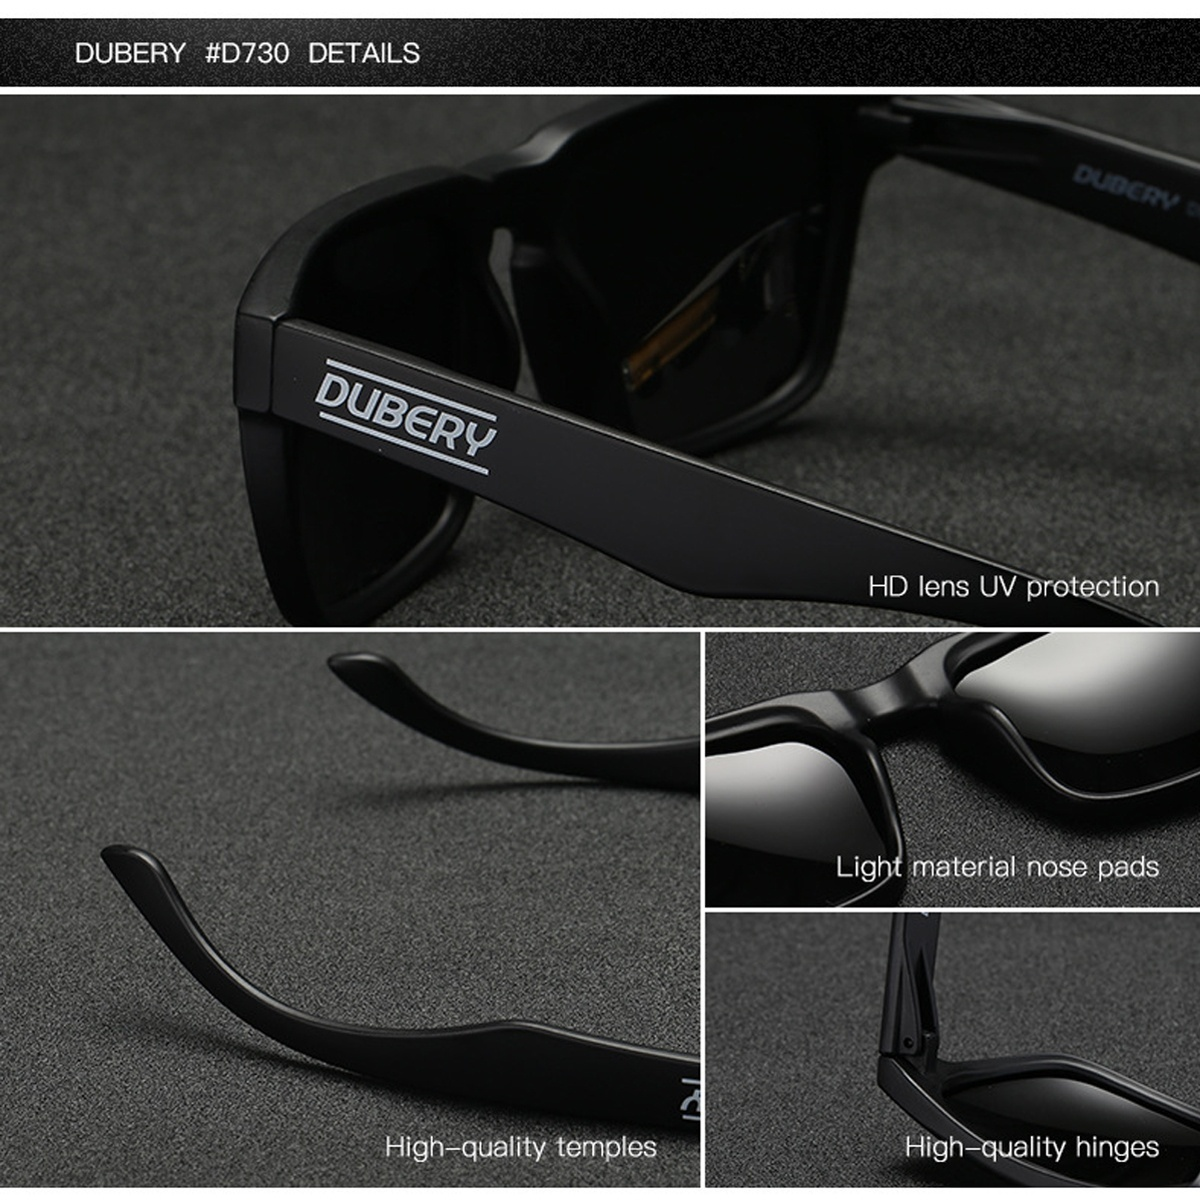 Dubery Unisex Fashion Polarized Uv400 Sunglasses With Box 99 9 Light Transmission Square Glasses Driving Fishing Outdoor Travel Beach Cycling Gifts For Birthday Christmas Buy Sell Online Best Prices In Srilanka Daraz Lk